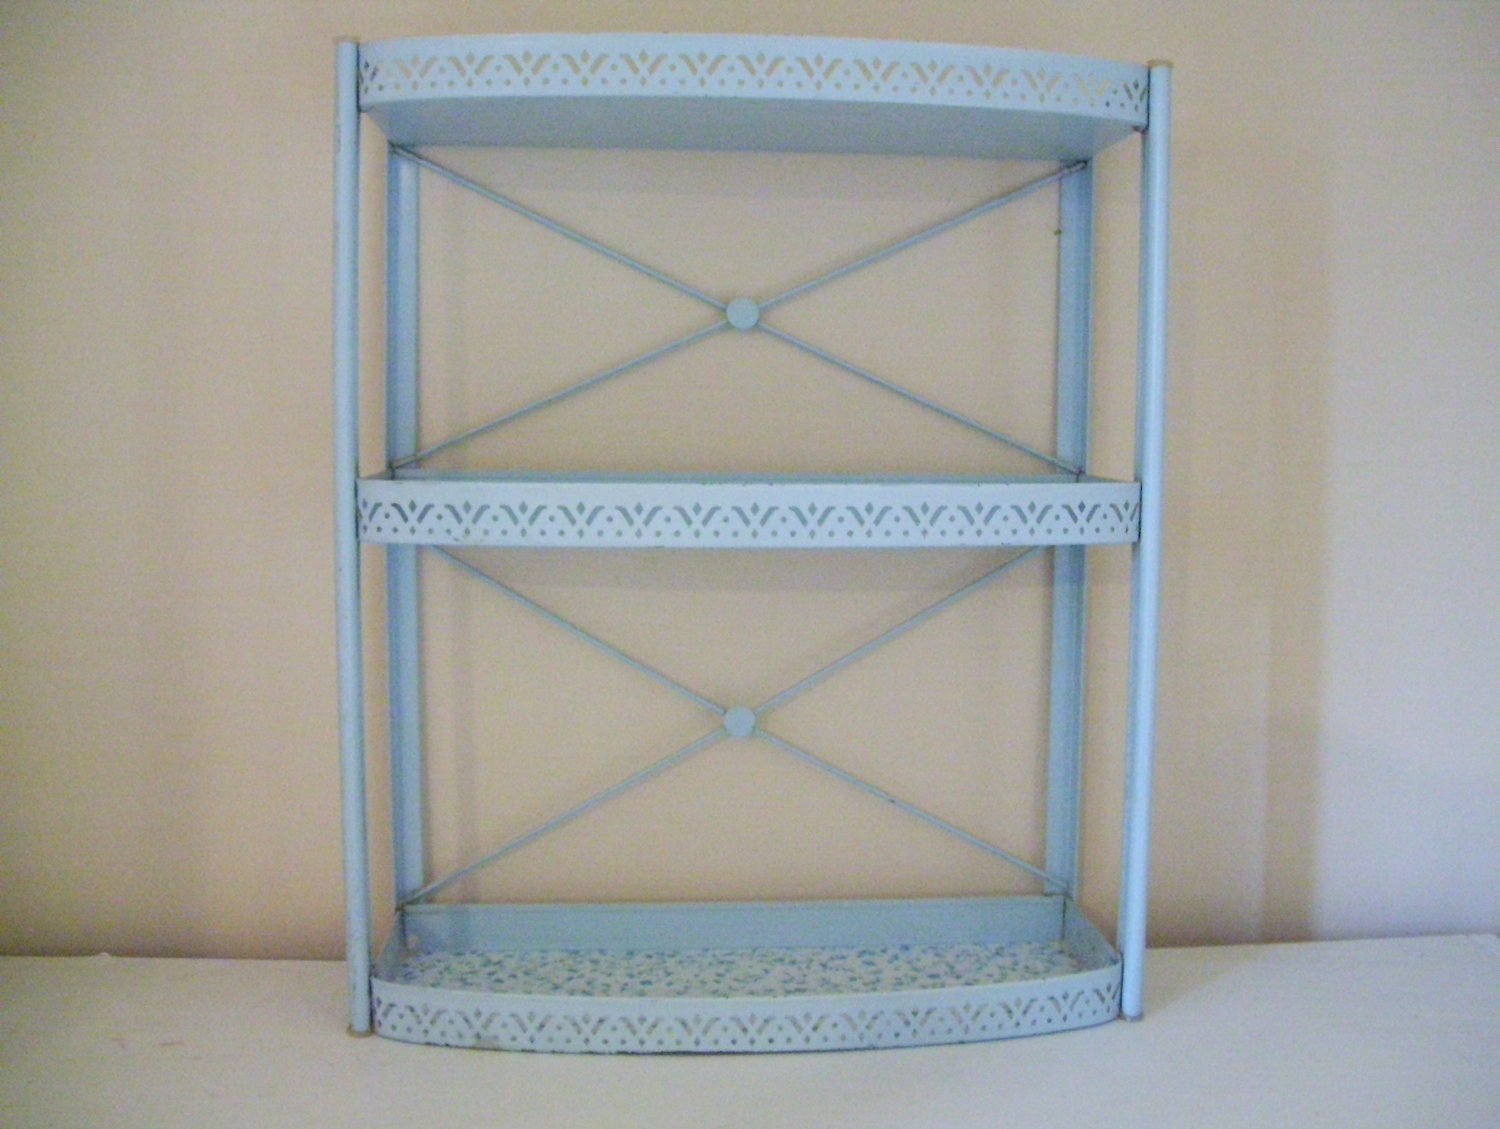 Vintage metal wall shelf by acottagekitchen on etsy - Wall metal shelf ...